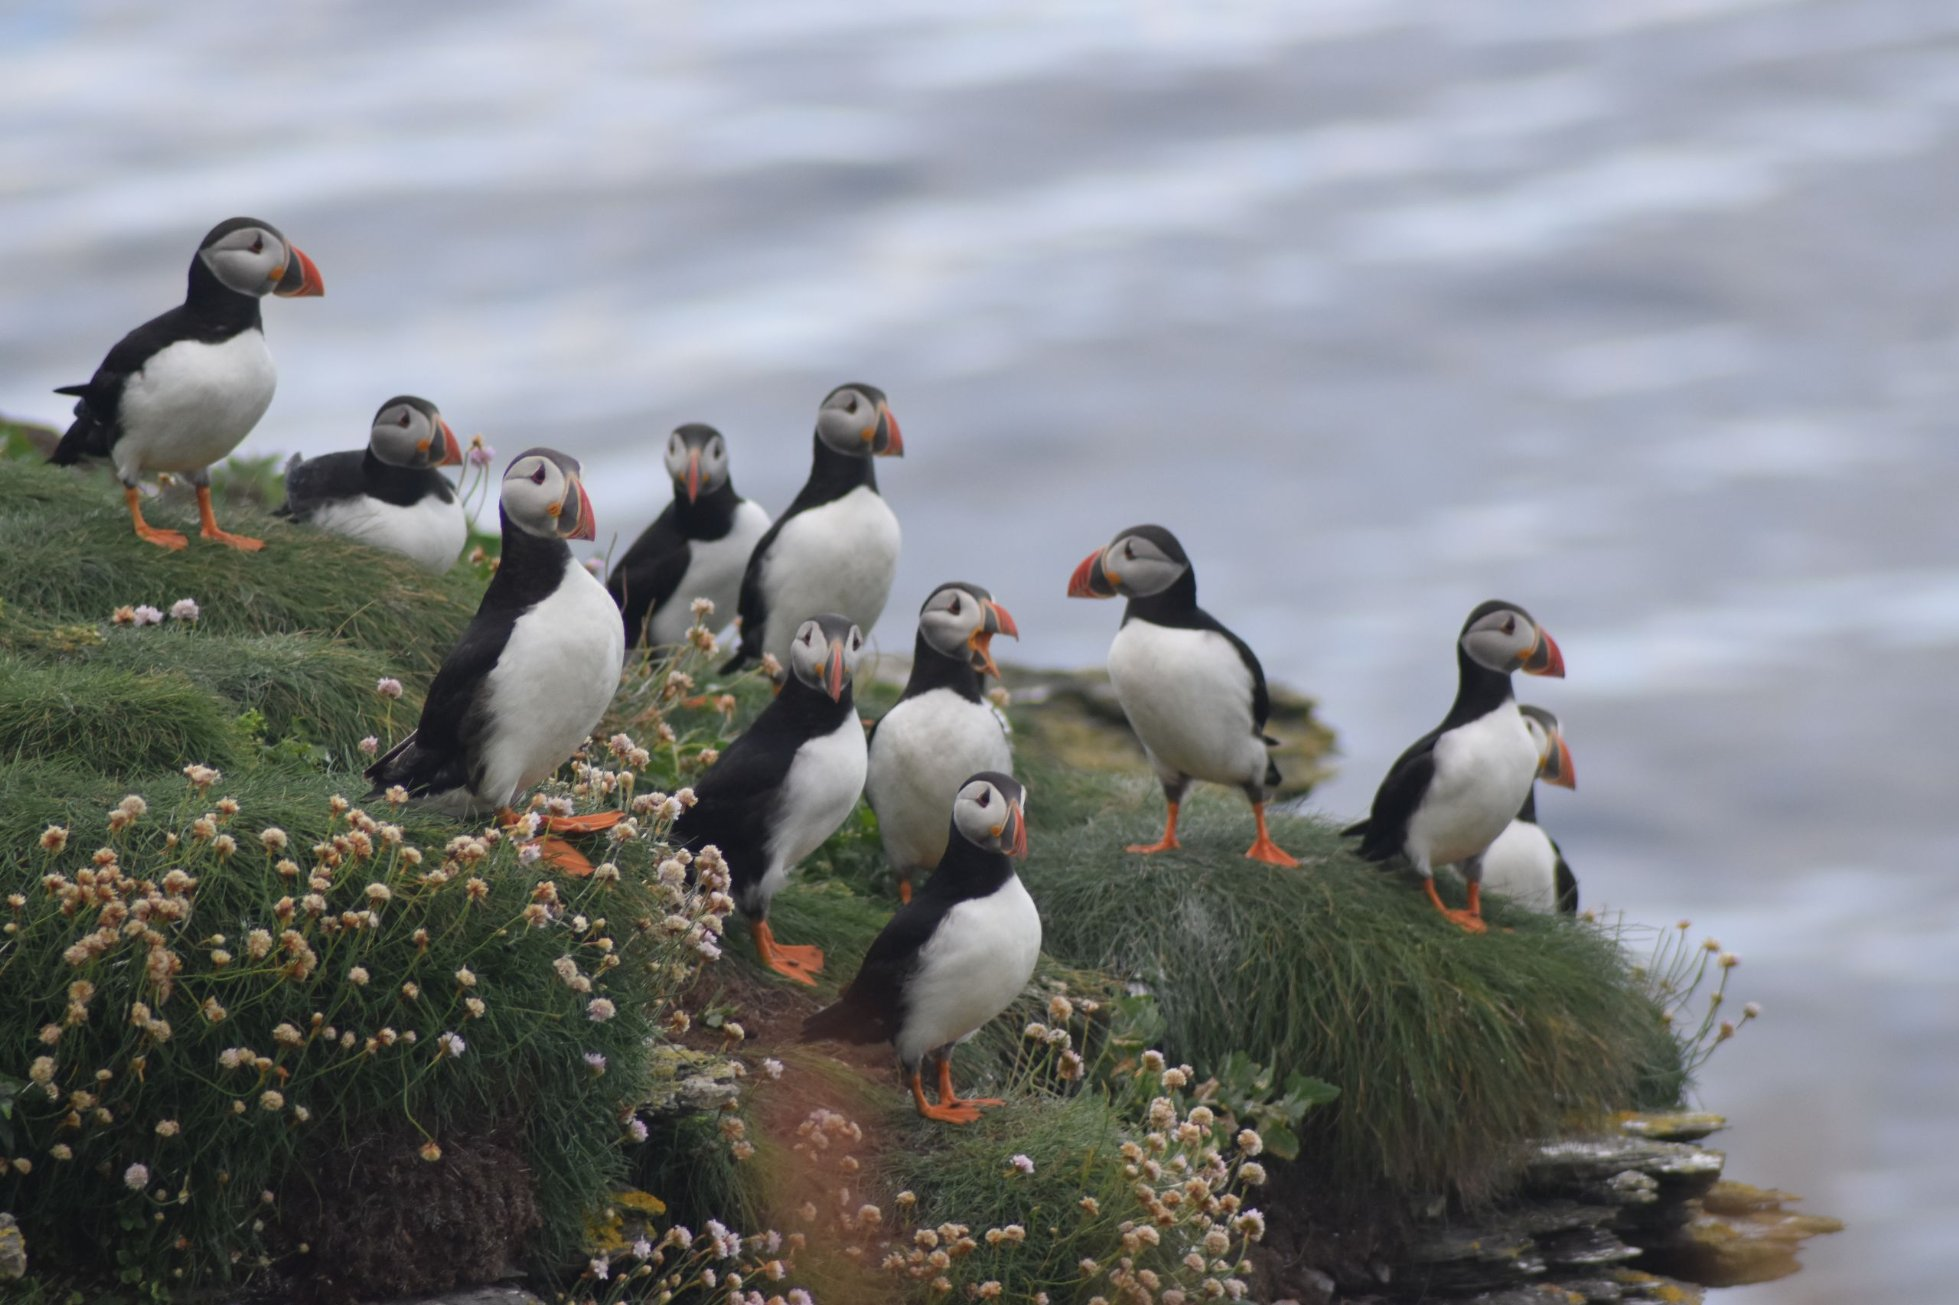 Puffins in Orkney - image by Nicole Windwick